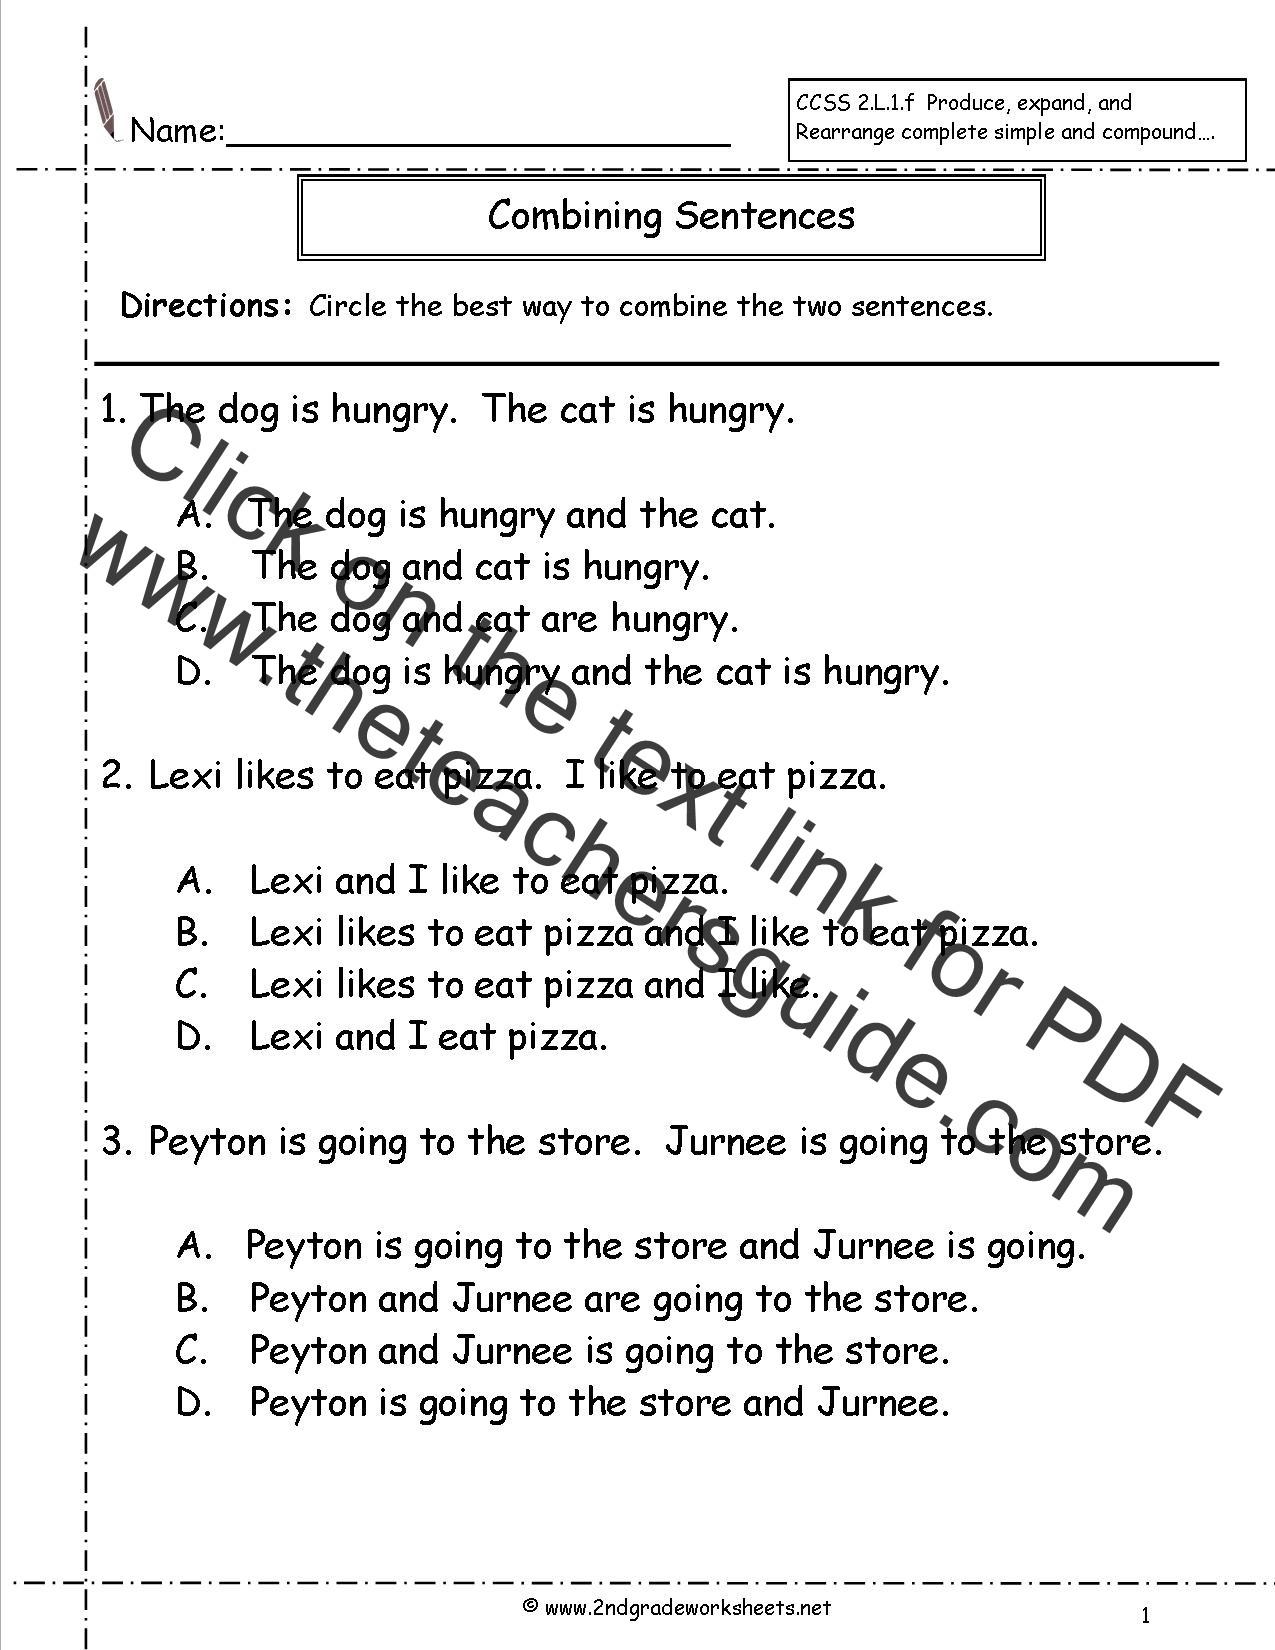 Scrambled Sentences Worksheets 2nd Grade Joining Words Worksheet for Grade 2